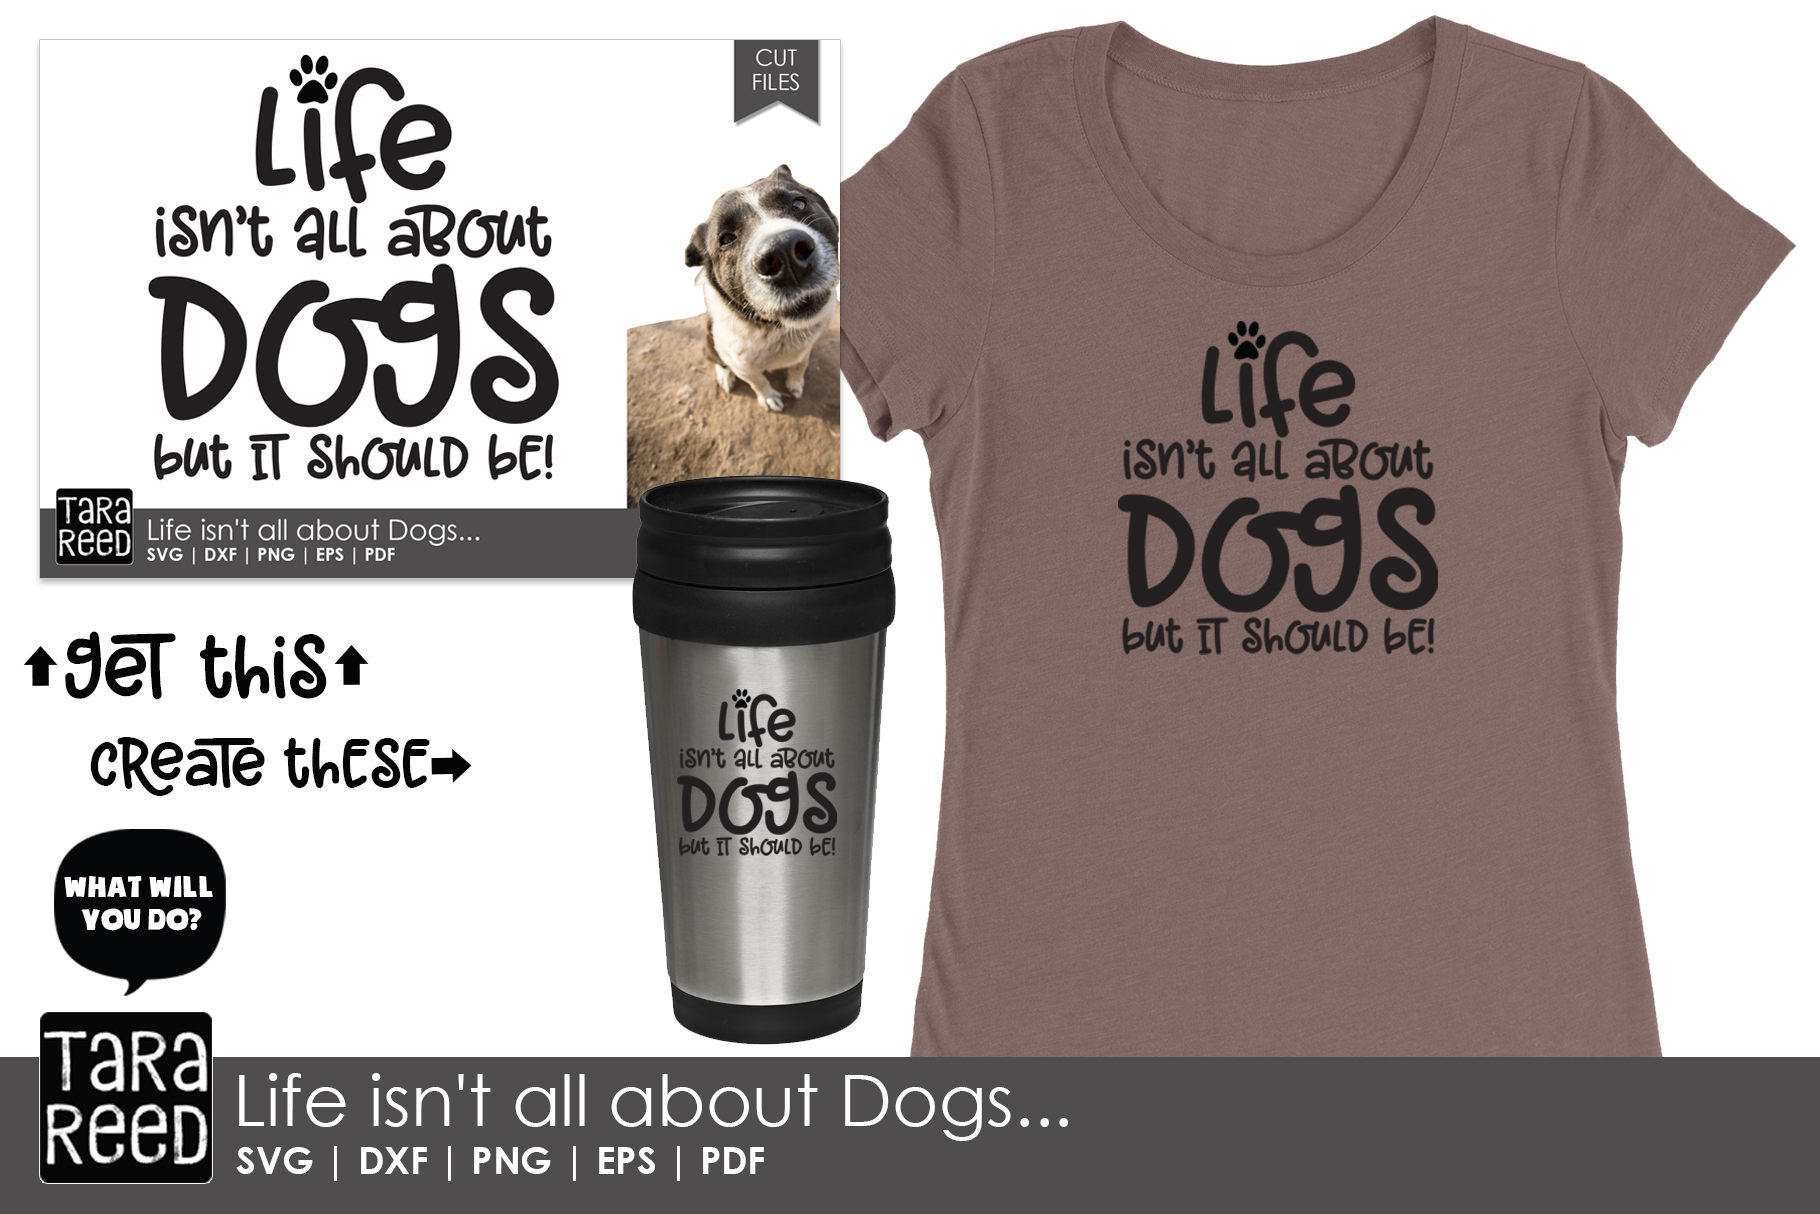 Life isn't all about Dogs - Dog SVG and Cut Files example image 2